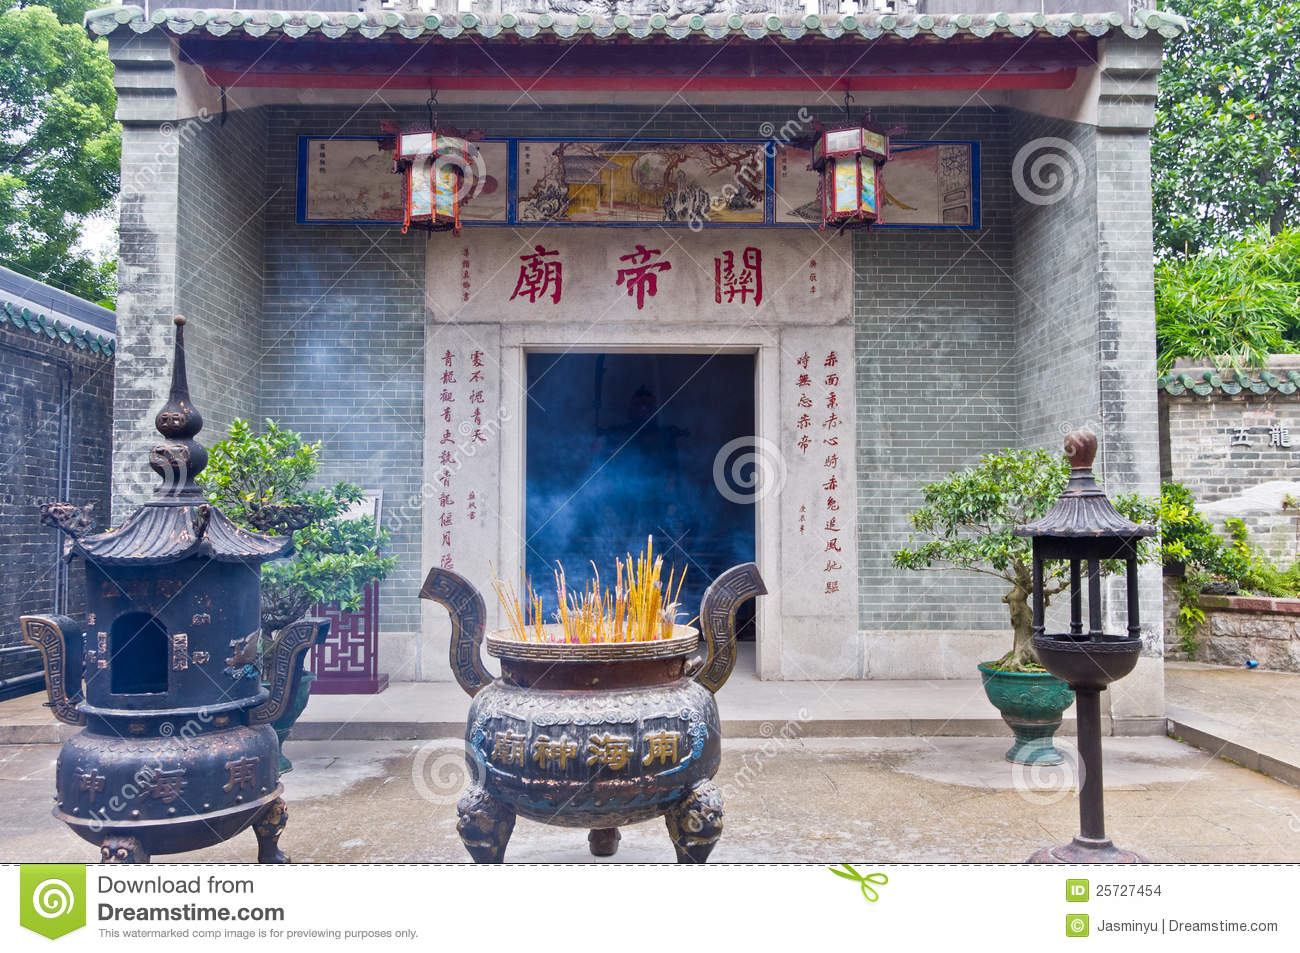 Temple of guan yu